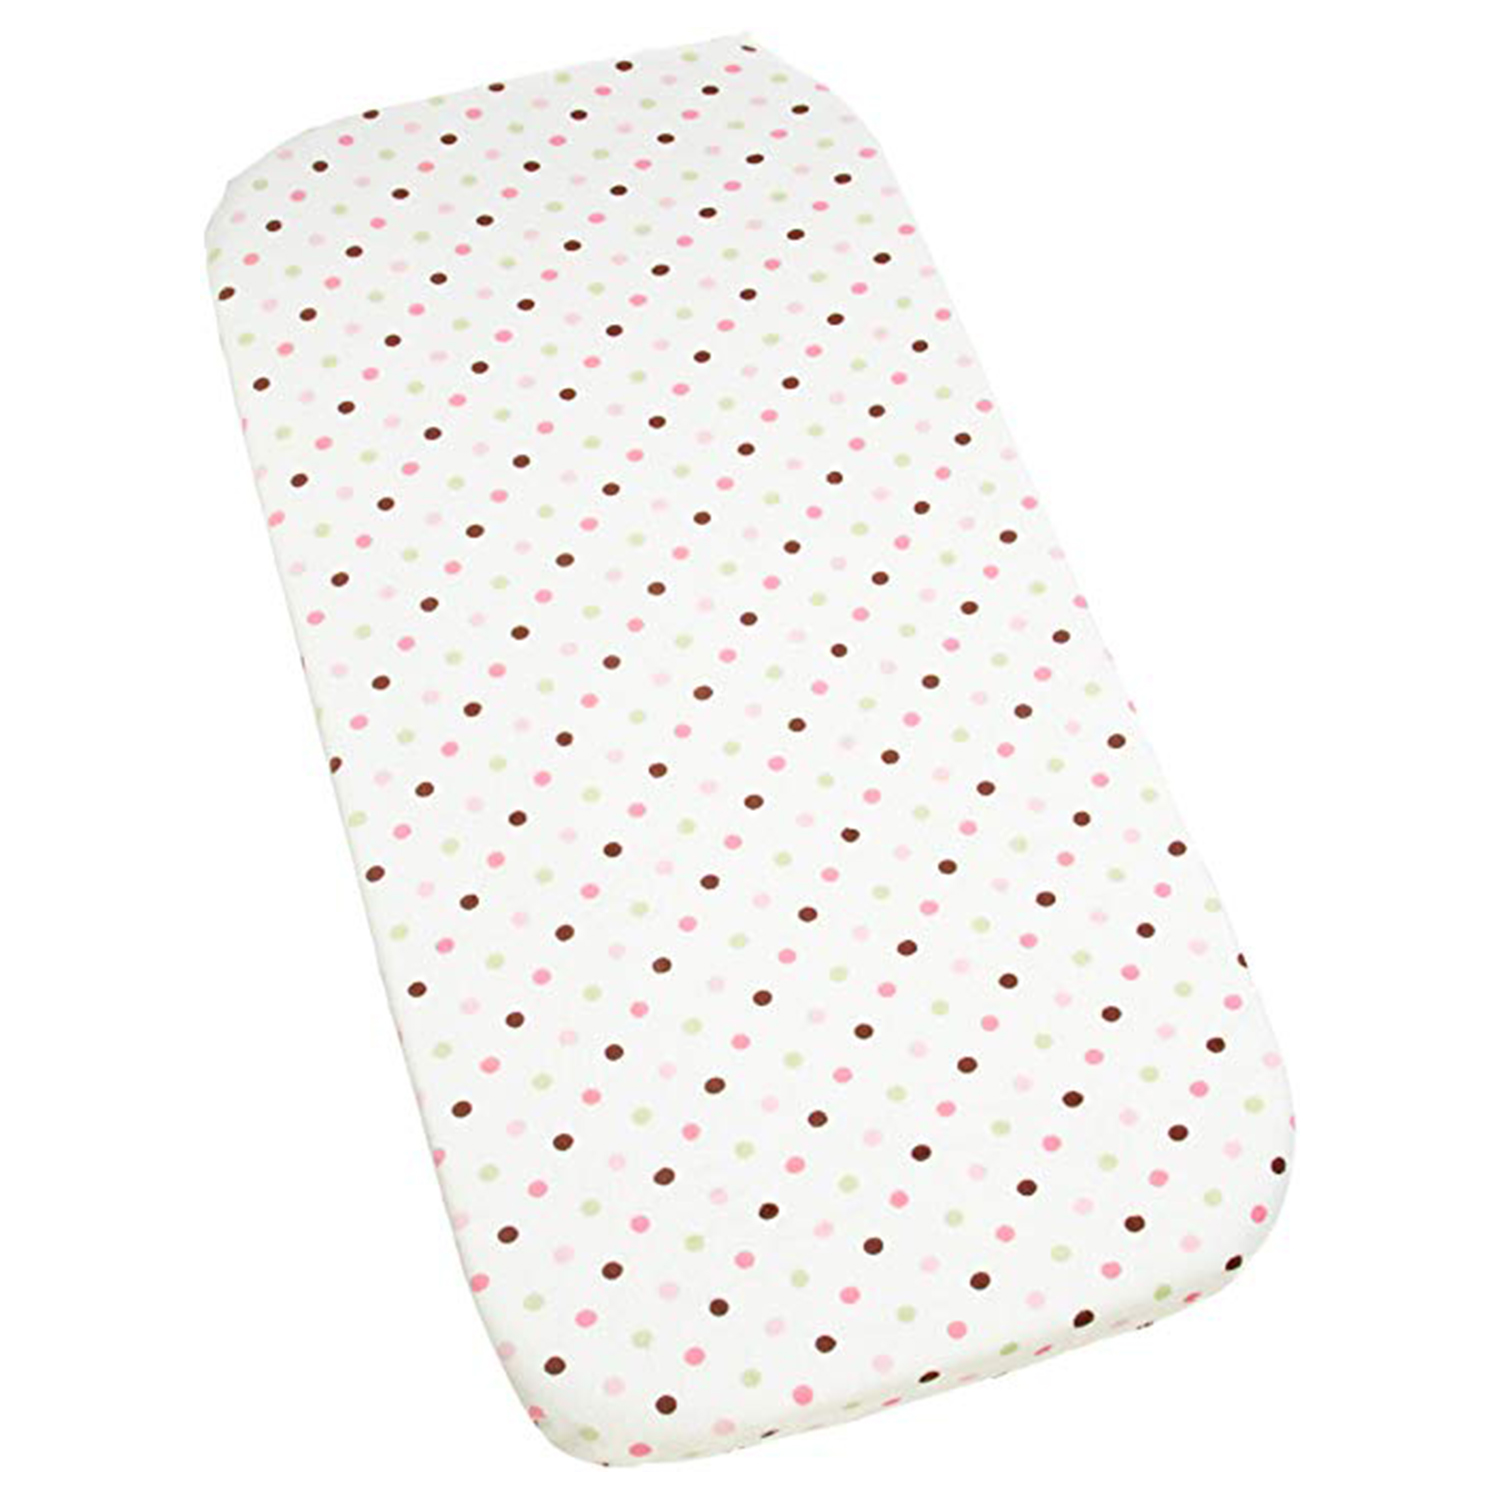 Carters Super Soft Printed Changing Pad Cover 100% Polyester - Pink/Green Dot